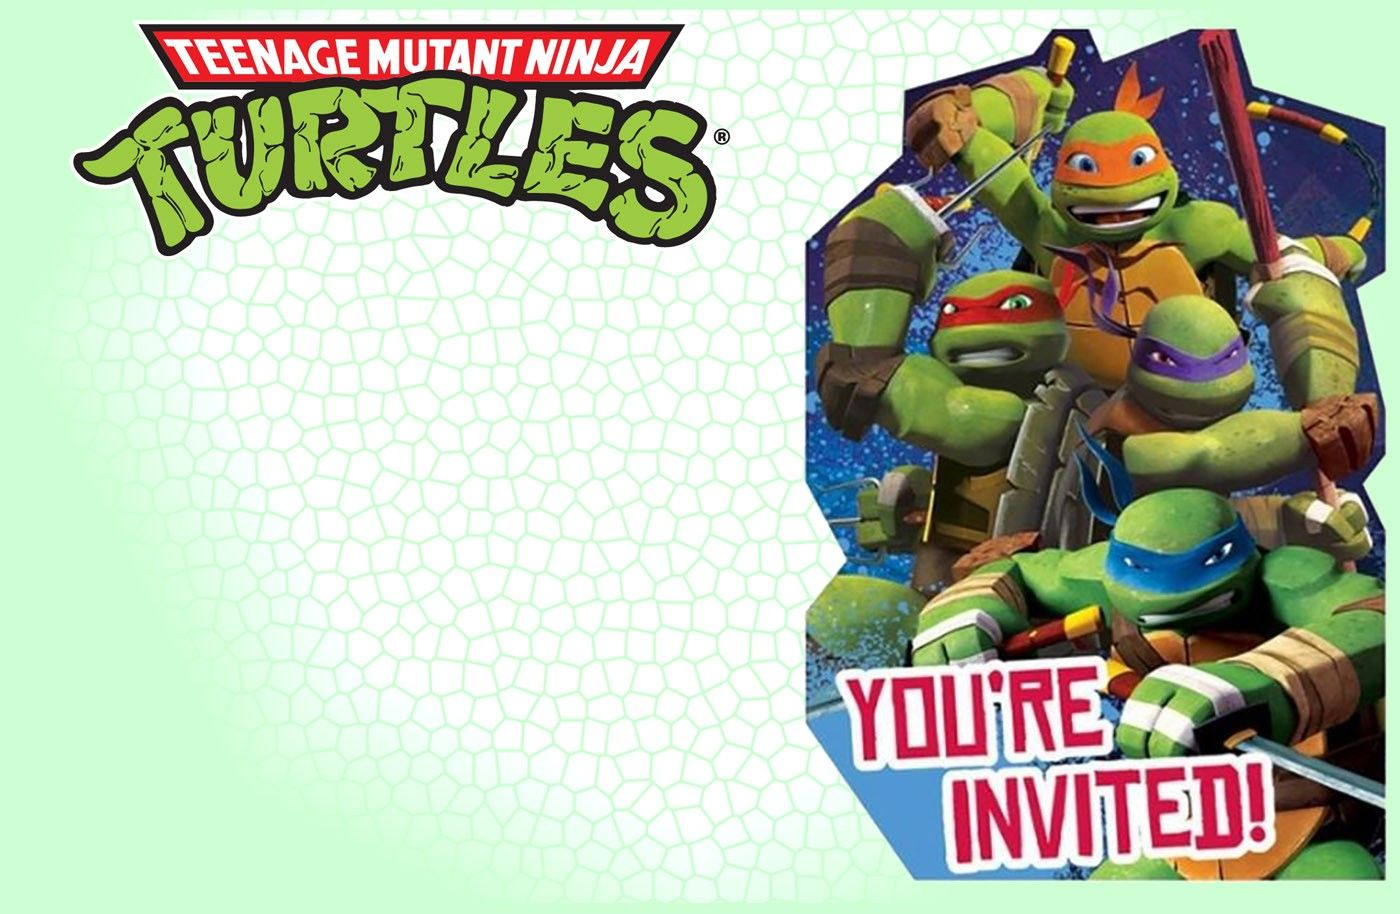 Editable Ninja Turtle Invitation Template | Carson birthday ...